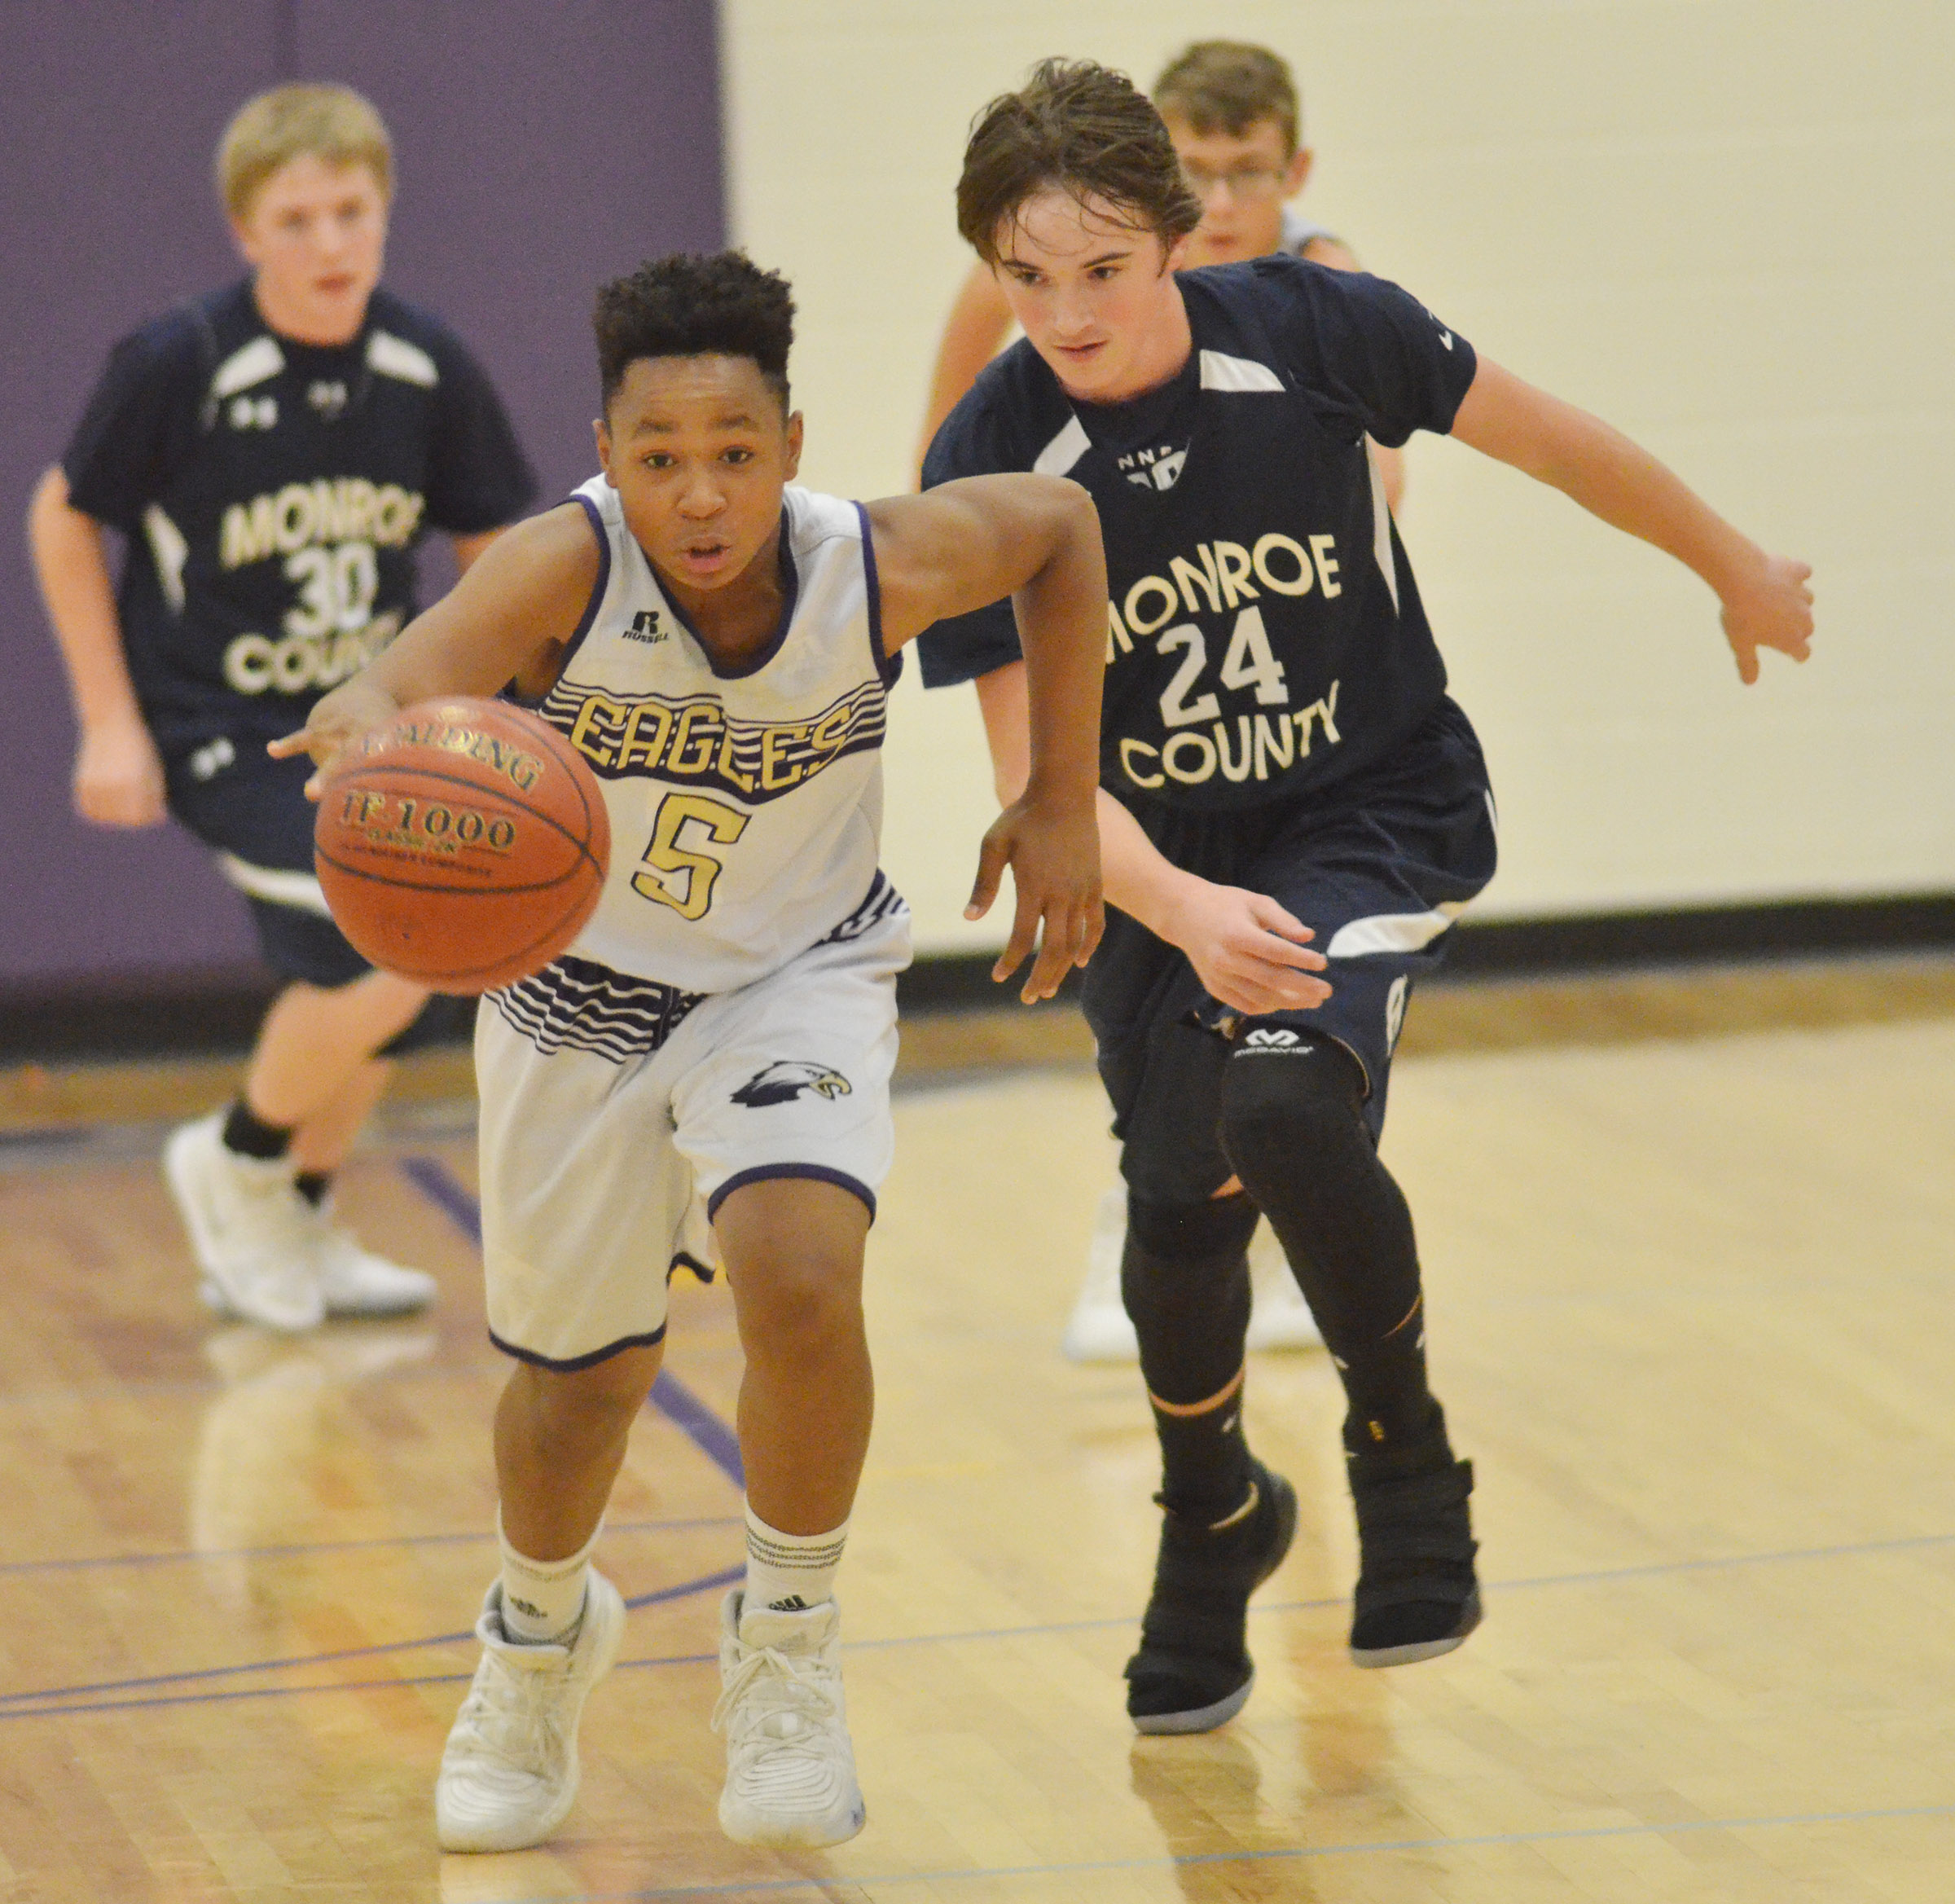 CMS seventh-grader Deondre Weathers steals the ball.